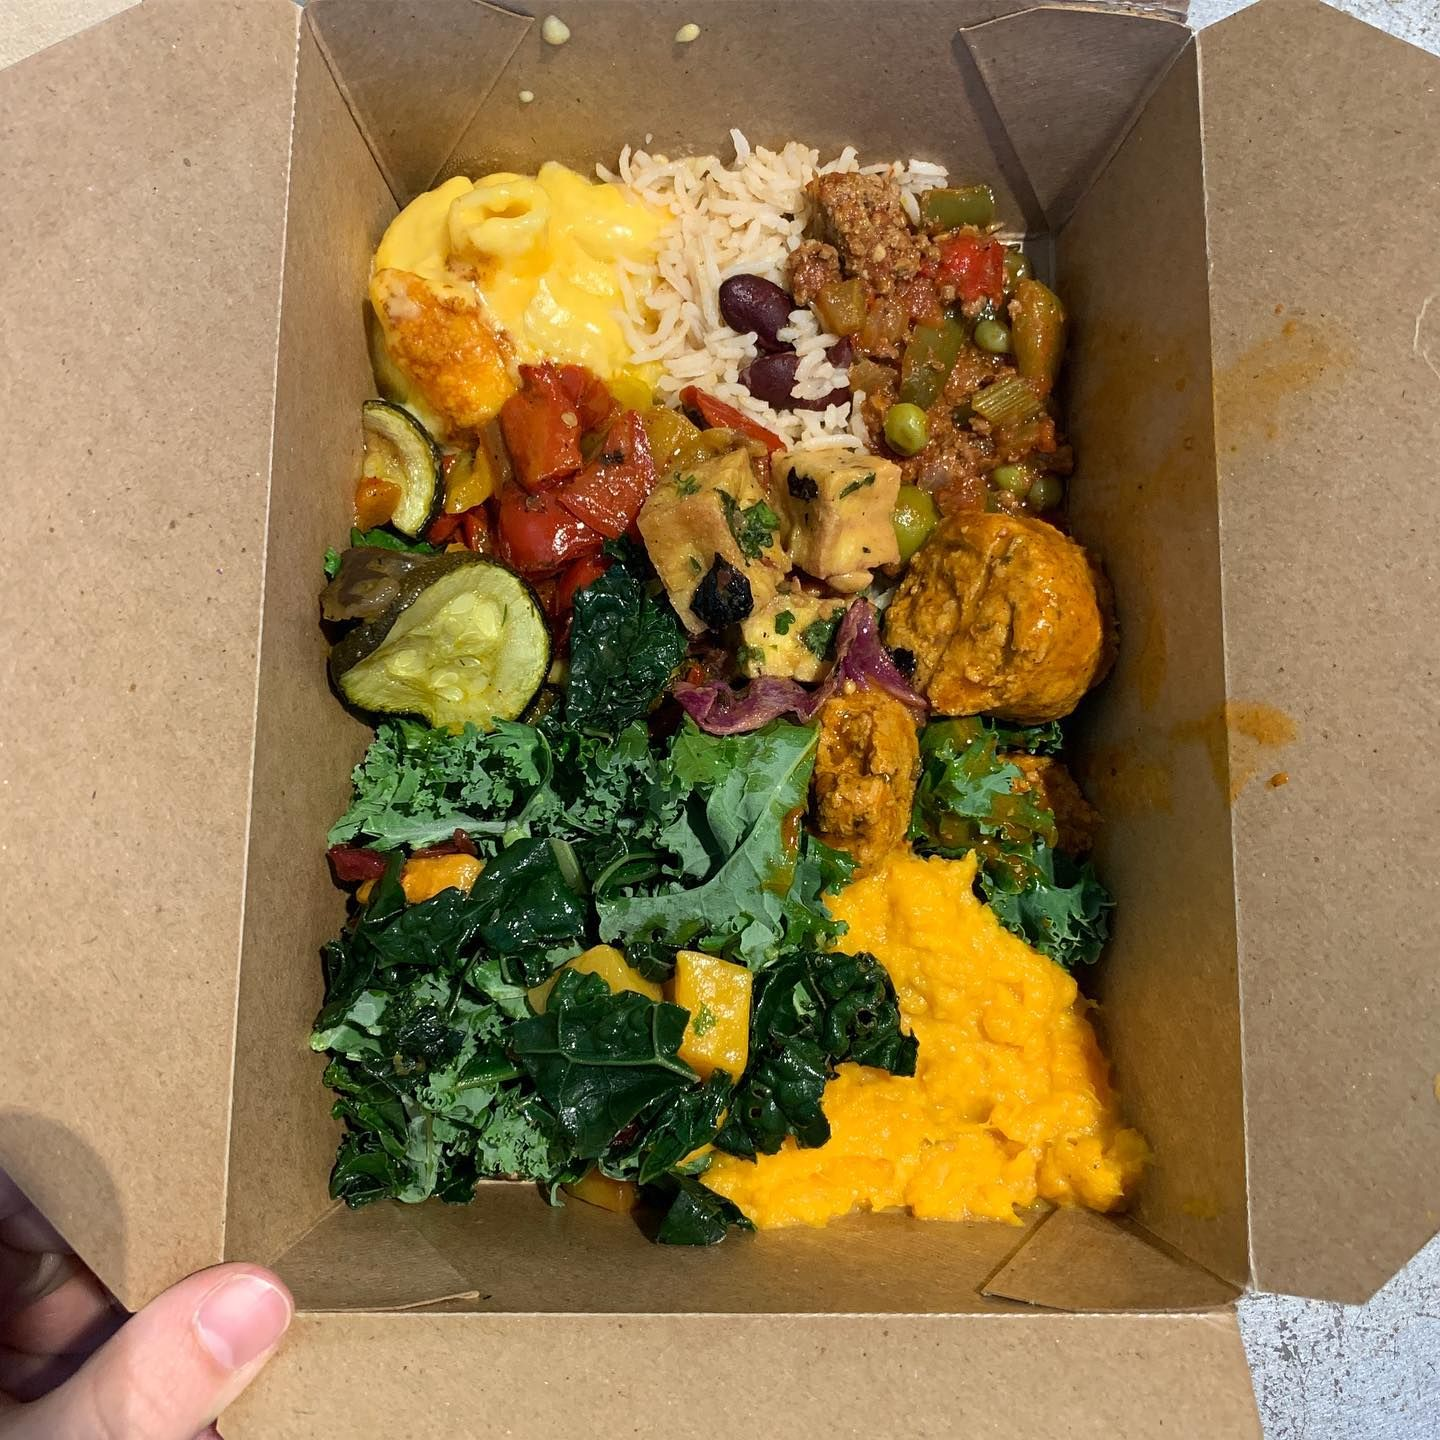 Lunch At Whole Foods Is Always Thankful We Are Now Within Walking Distance Winterpa In 2020 Weeknight Dinner Recipes Easy Whole Food Recipes Whole Foods Market